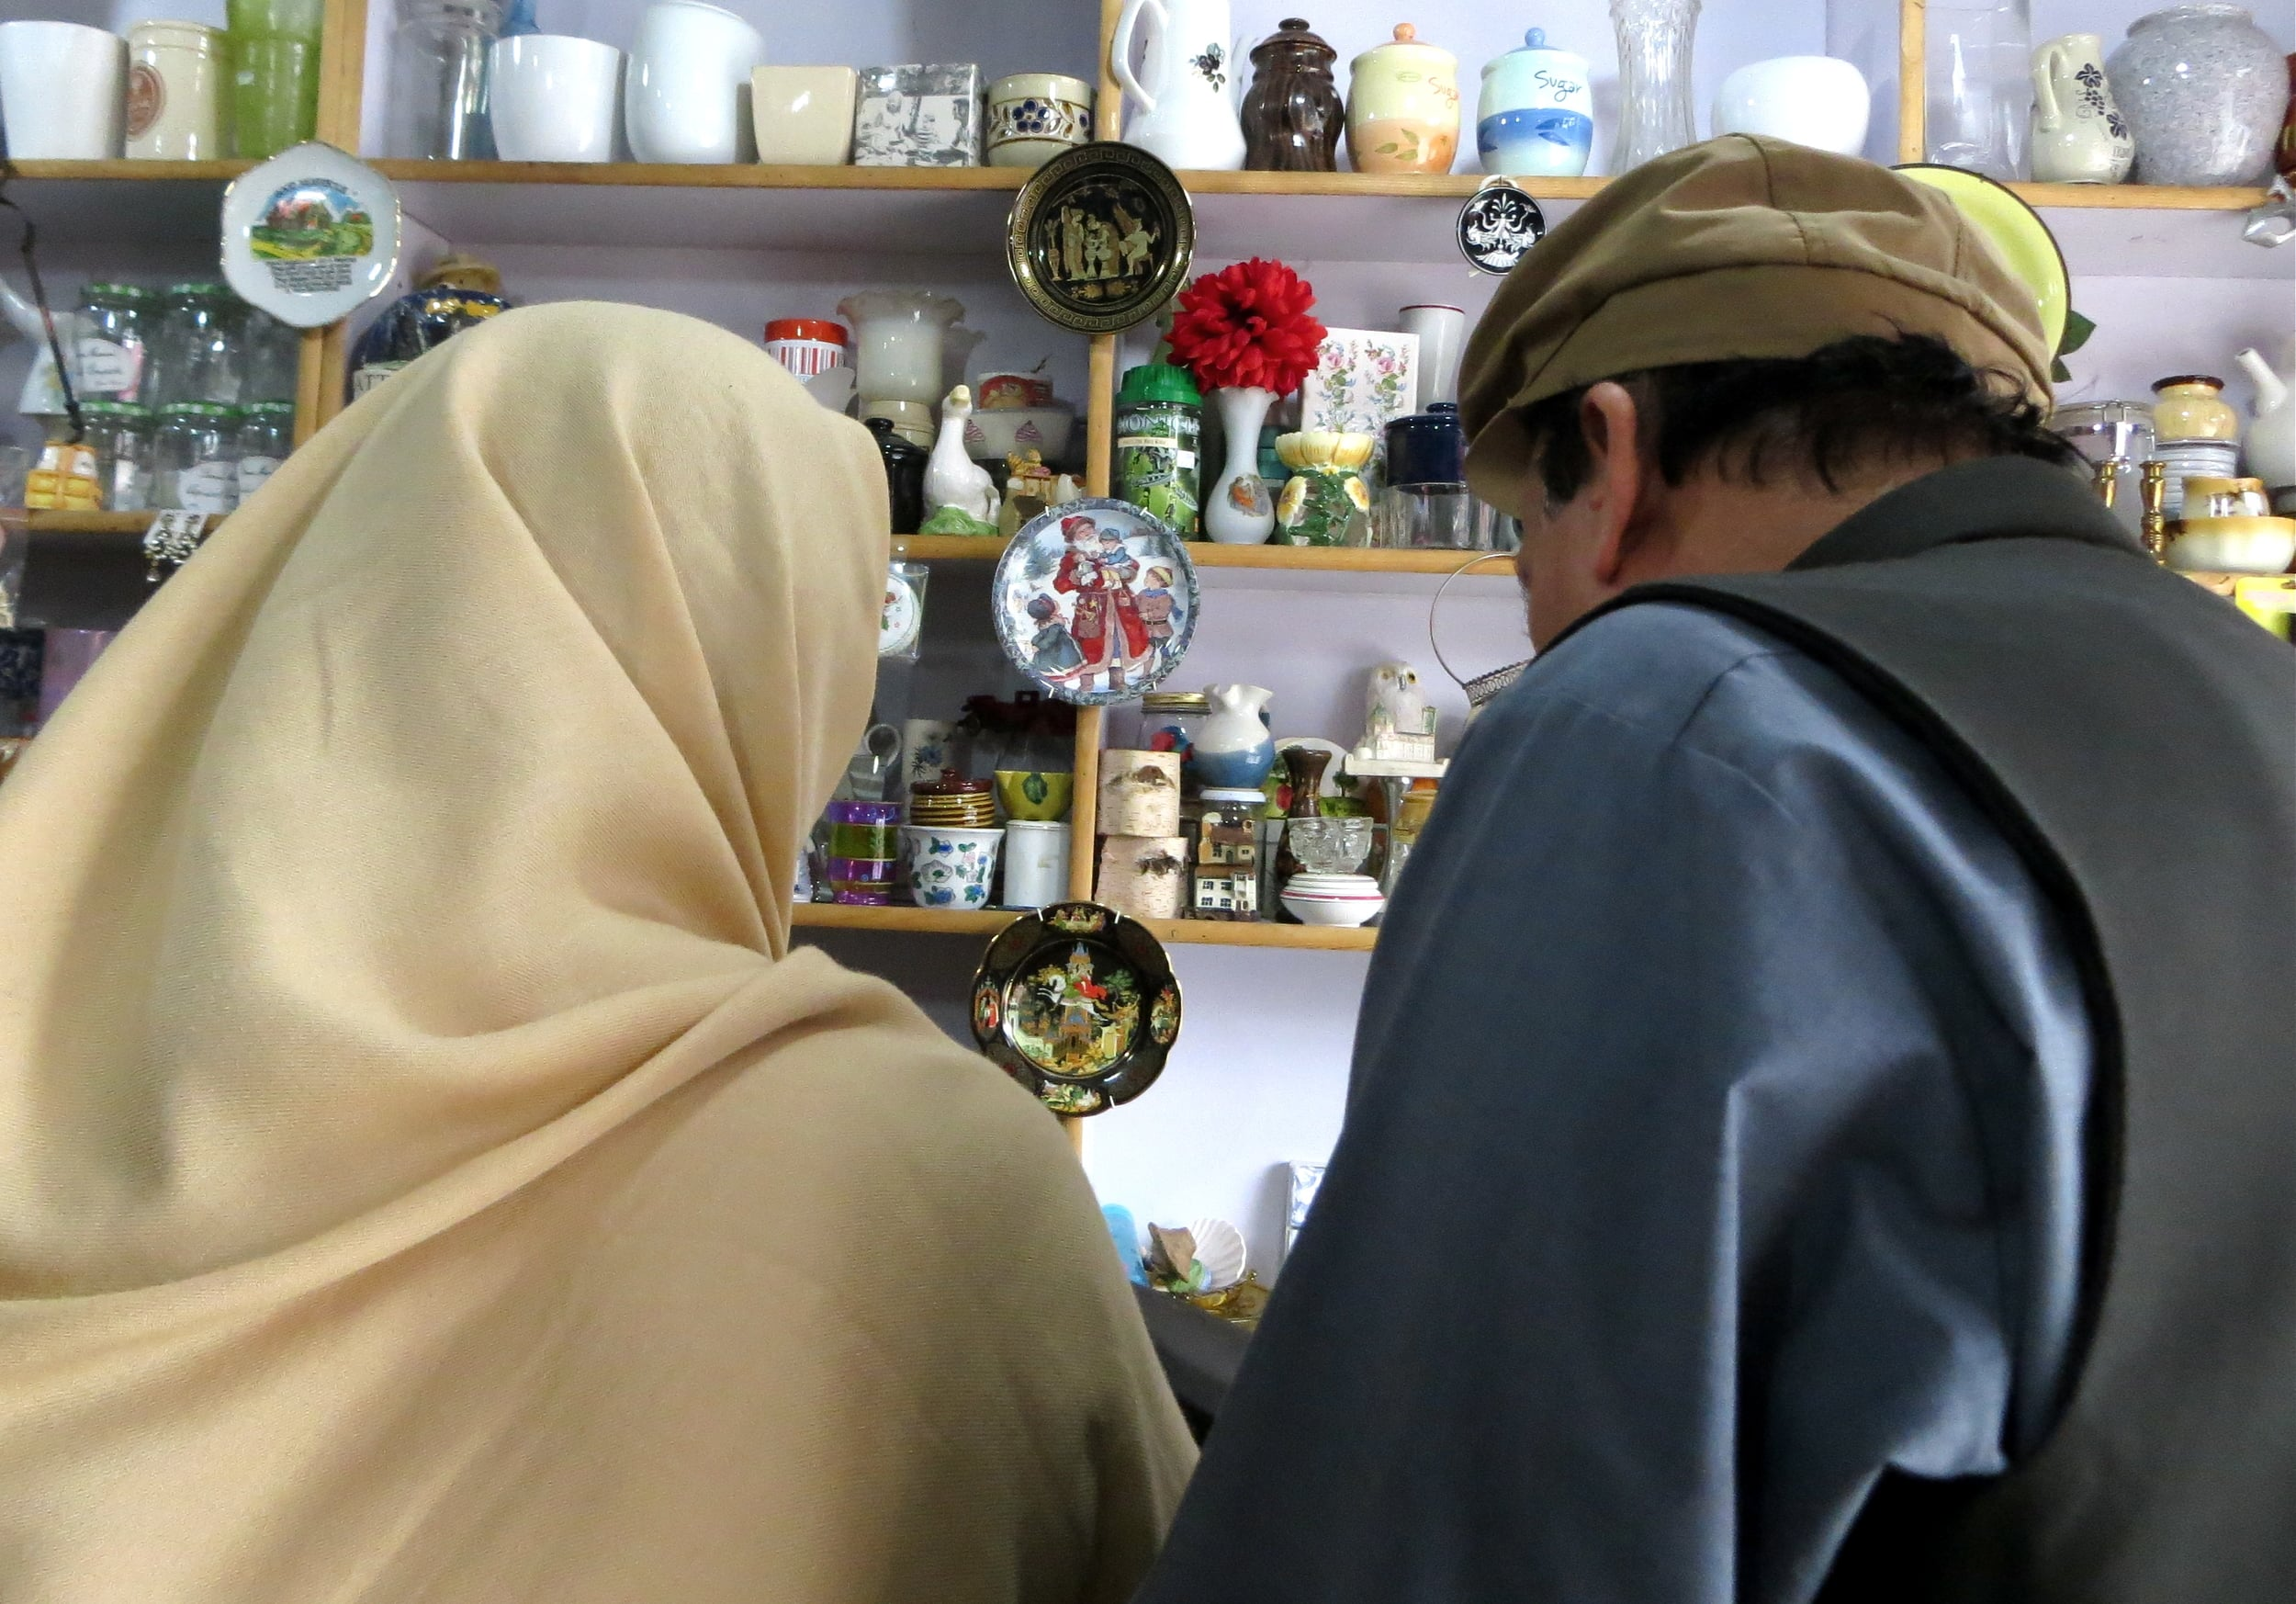 A COUPLE LOOKS AT ITEMS FOR SALE IN A CURIO SHOP IN ISLAMABAD, PAKISTAN. PHOTO BY BEENISH AHMED.